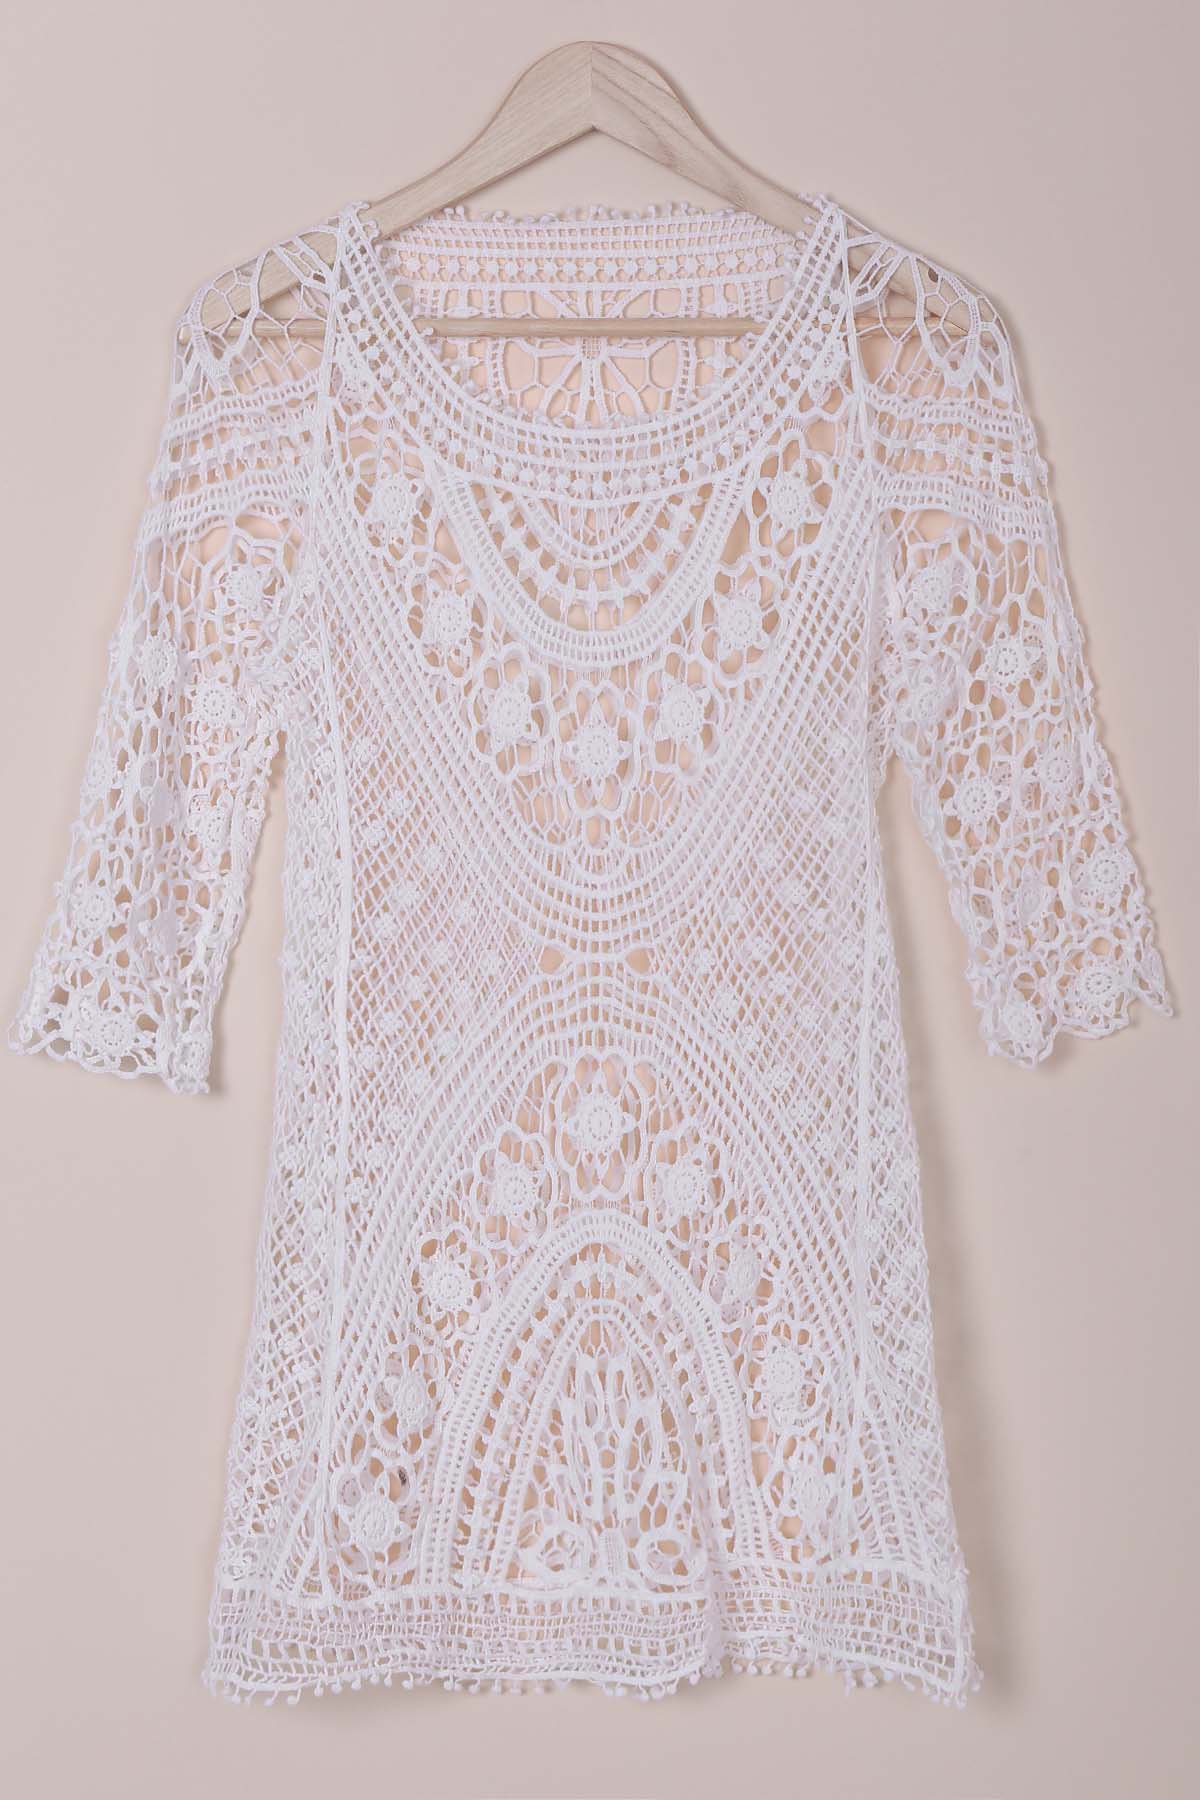 Round Collar 3/4 Sleeve Cut Out Crochet Cover-Up